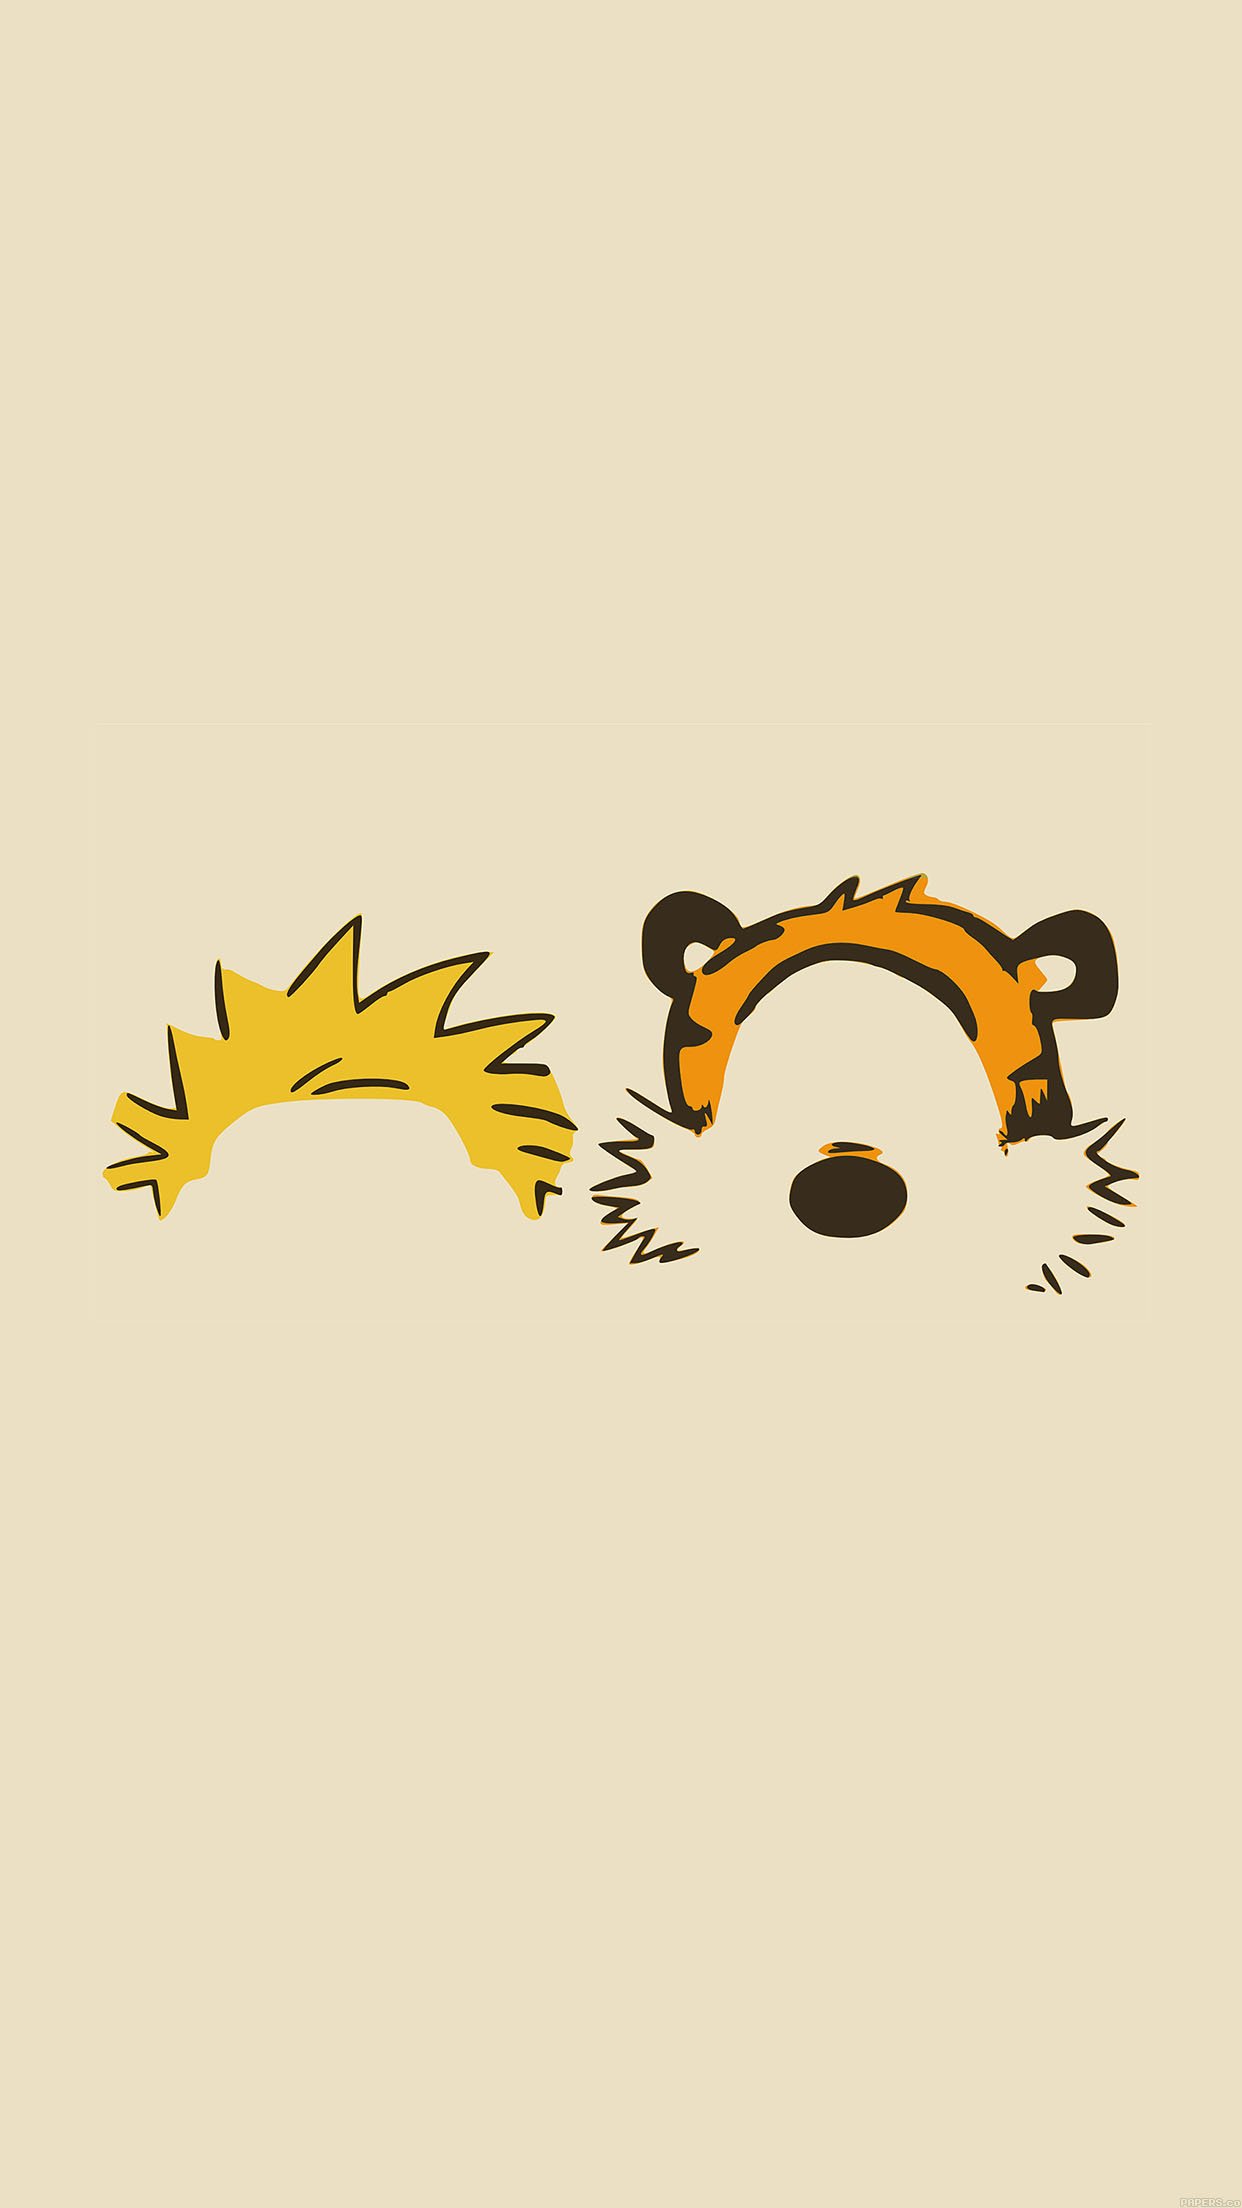 Cute Wallpapers For Samsung Ac27 Wallpaper Calvin Hobbes Minimal Illust Papers Co